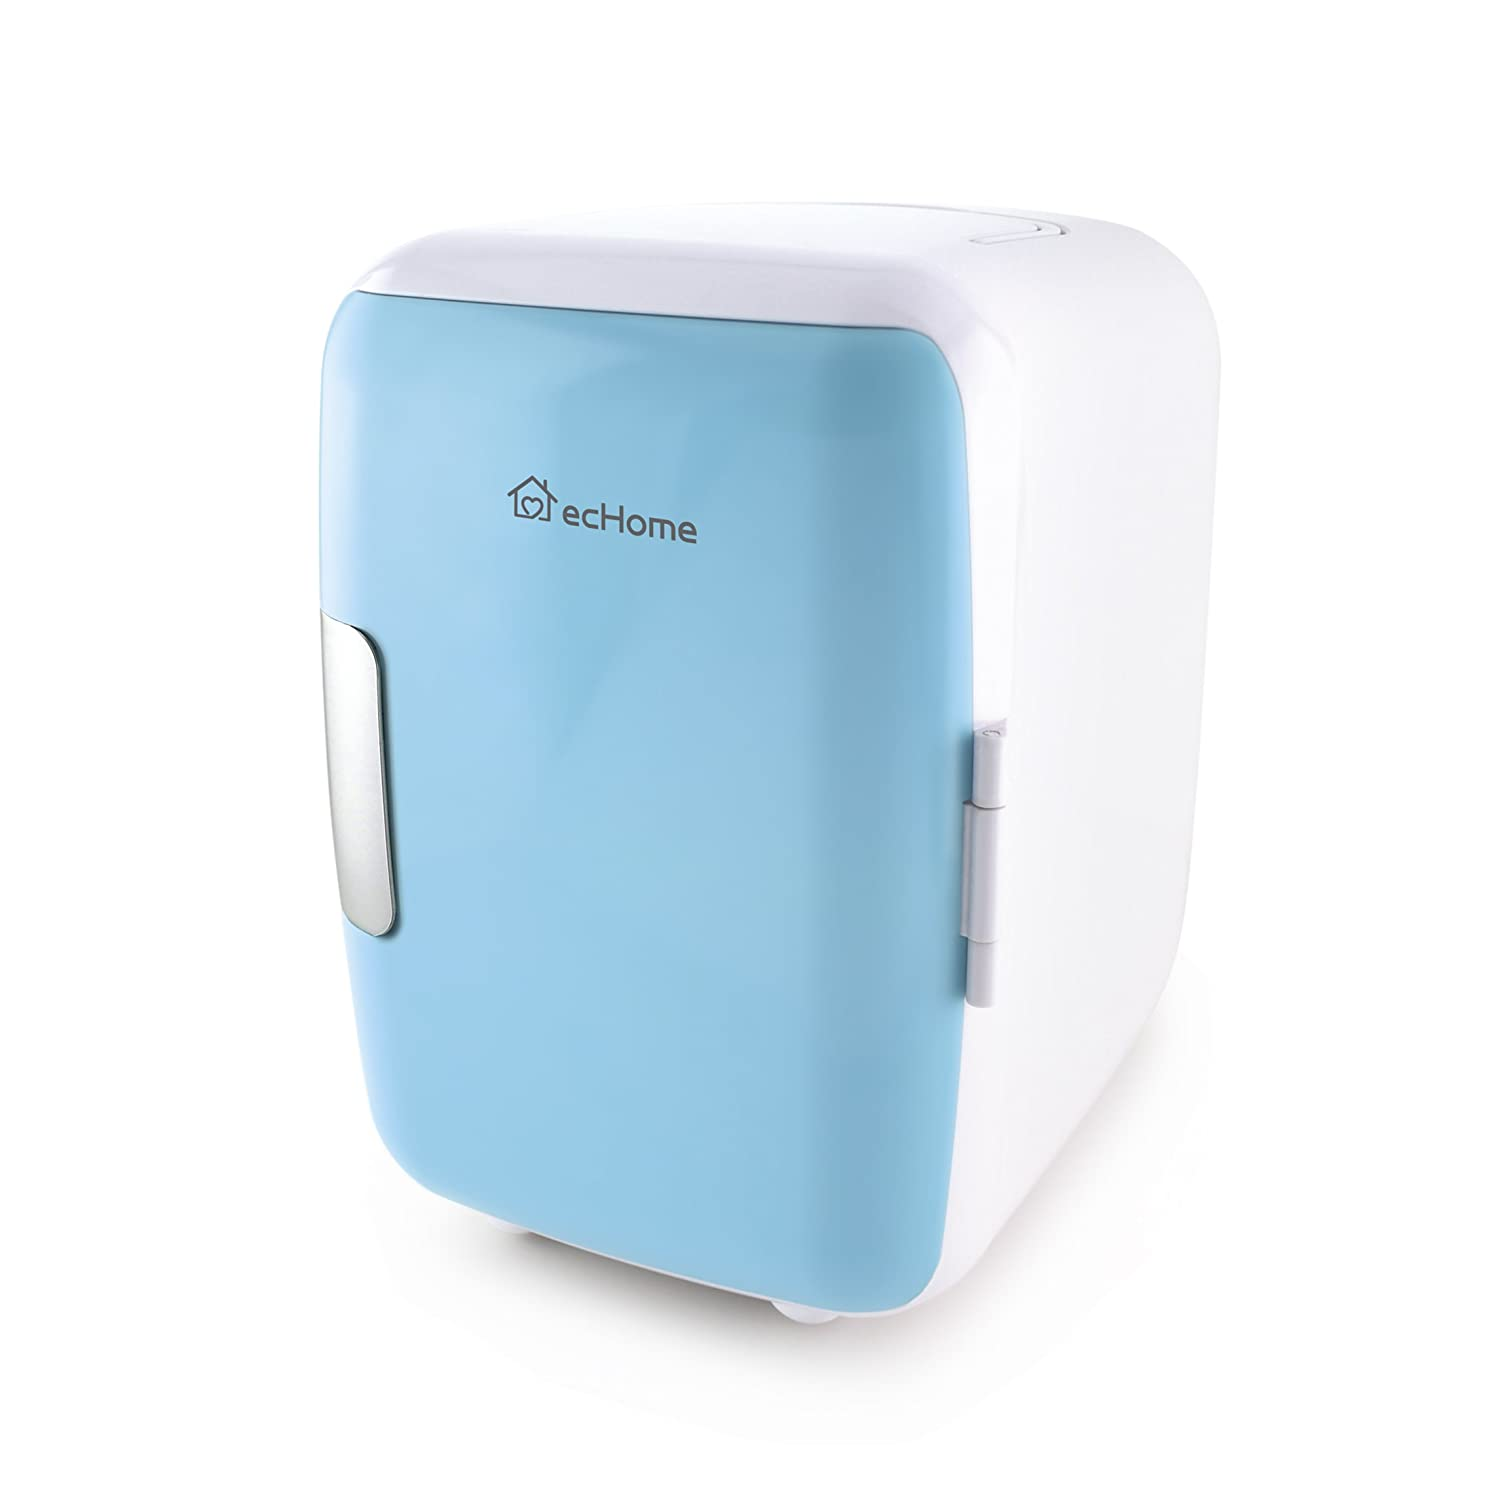 ecHome Portable 4L Mini Refrigerator Fridge Cooler Freezer and Warmer for Car Home Blue